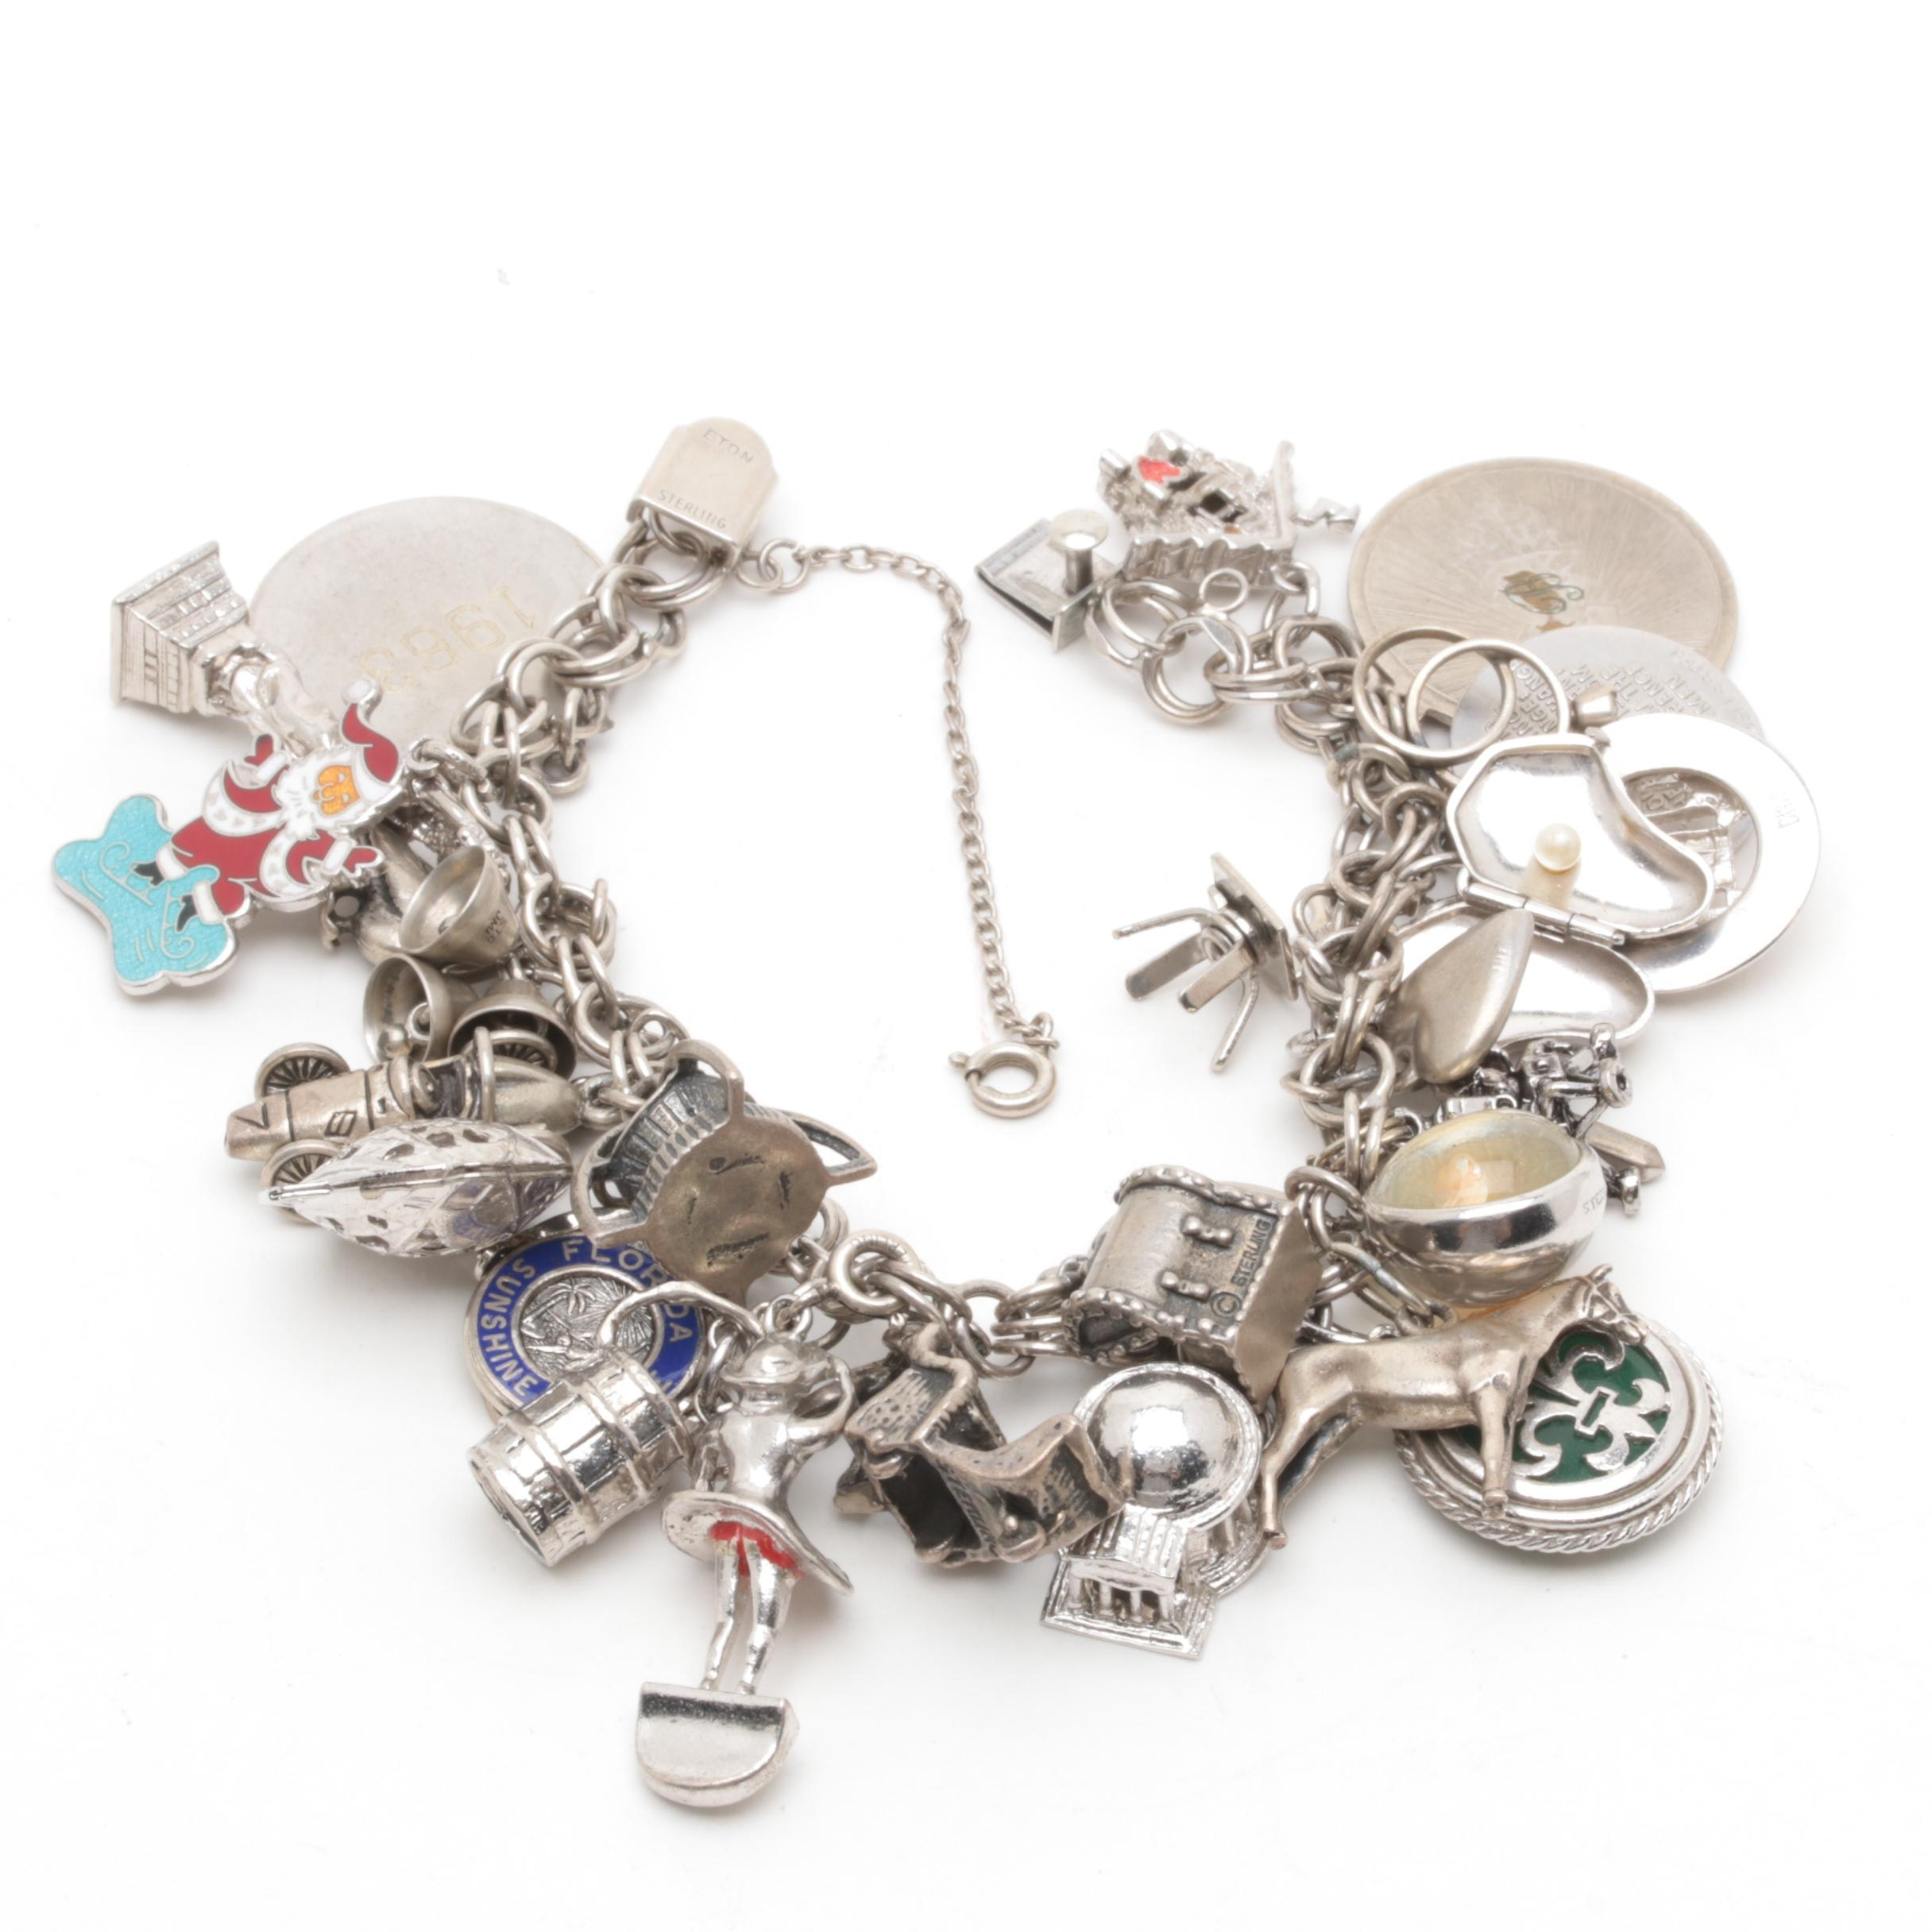 Sterling Silver Charm Bracelet Including Enamel, Glass, and Imitation Pearl